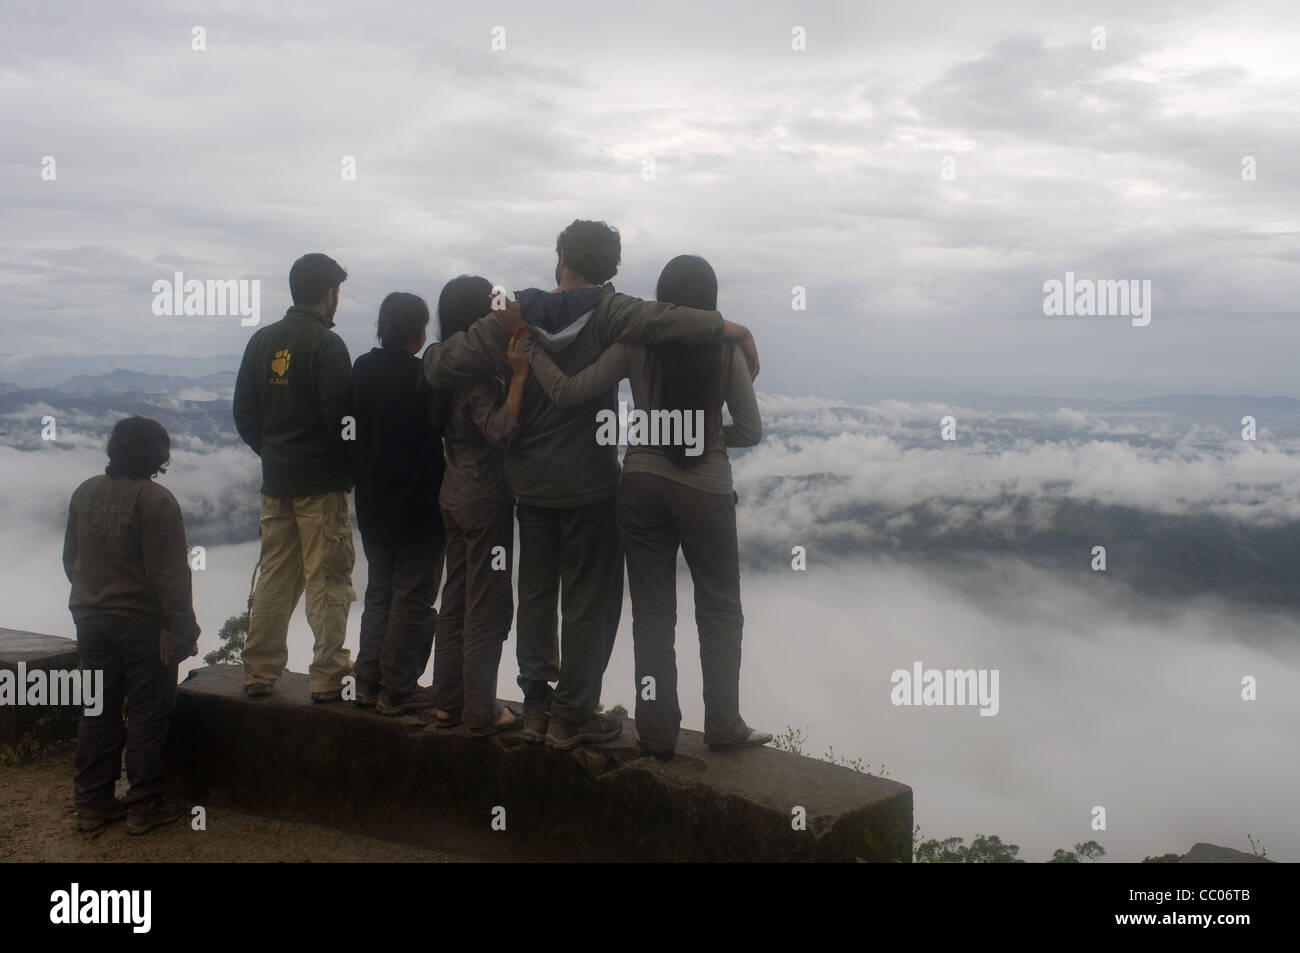 Friends staring at the Munnar valley - Stock Image